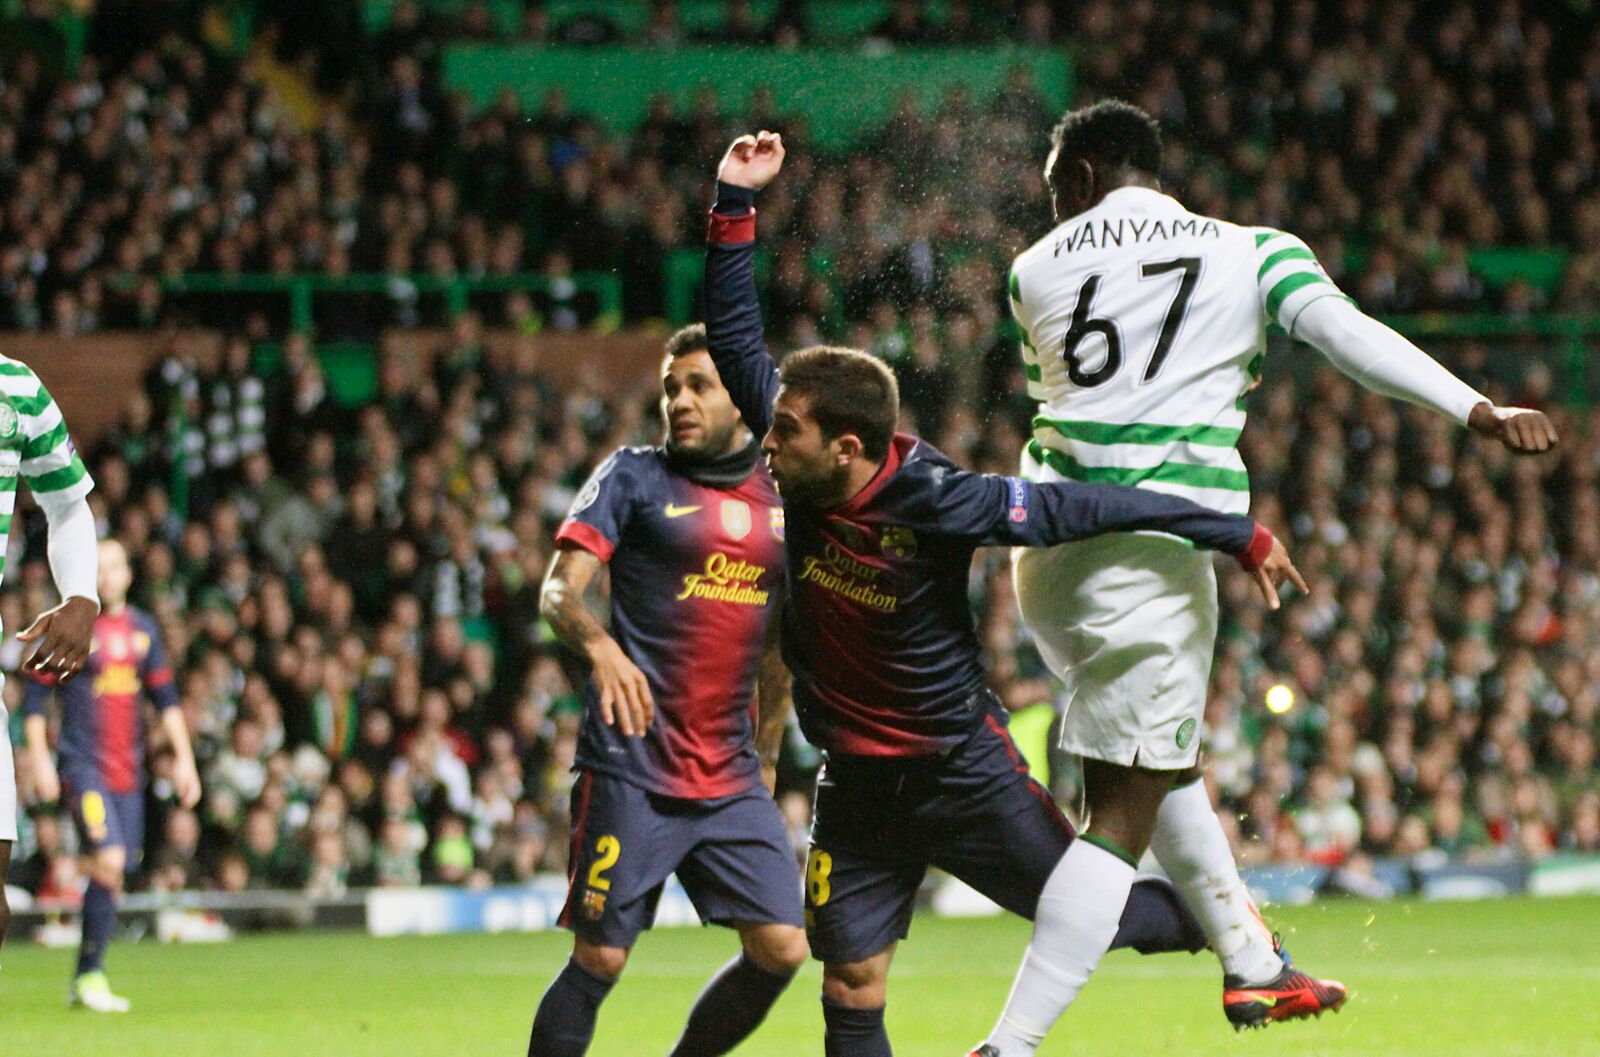 WHY I M A CELTIC SUPPORTER VICTOR WANYAMA